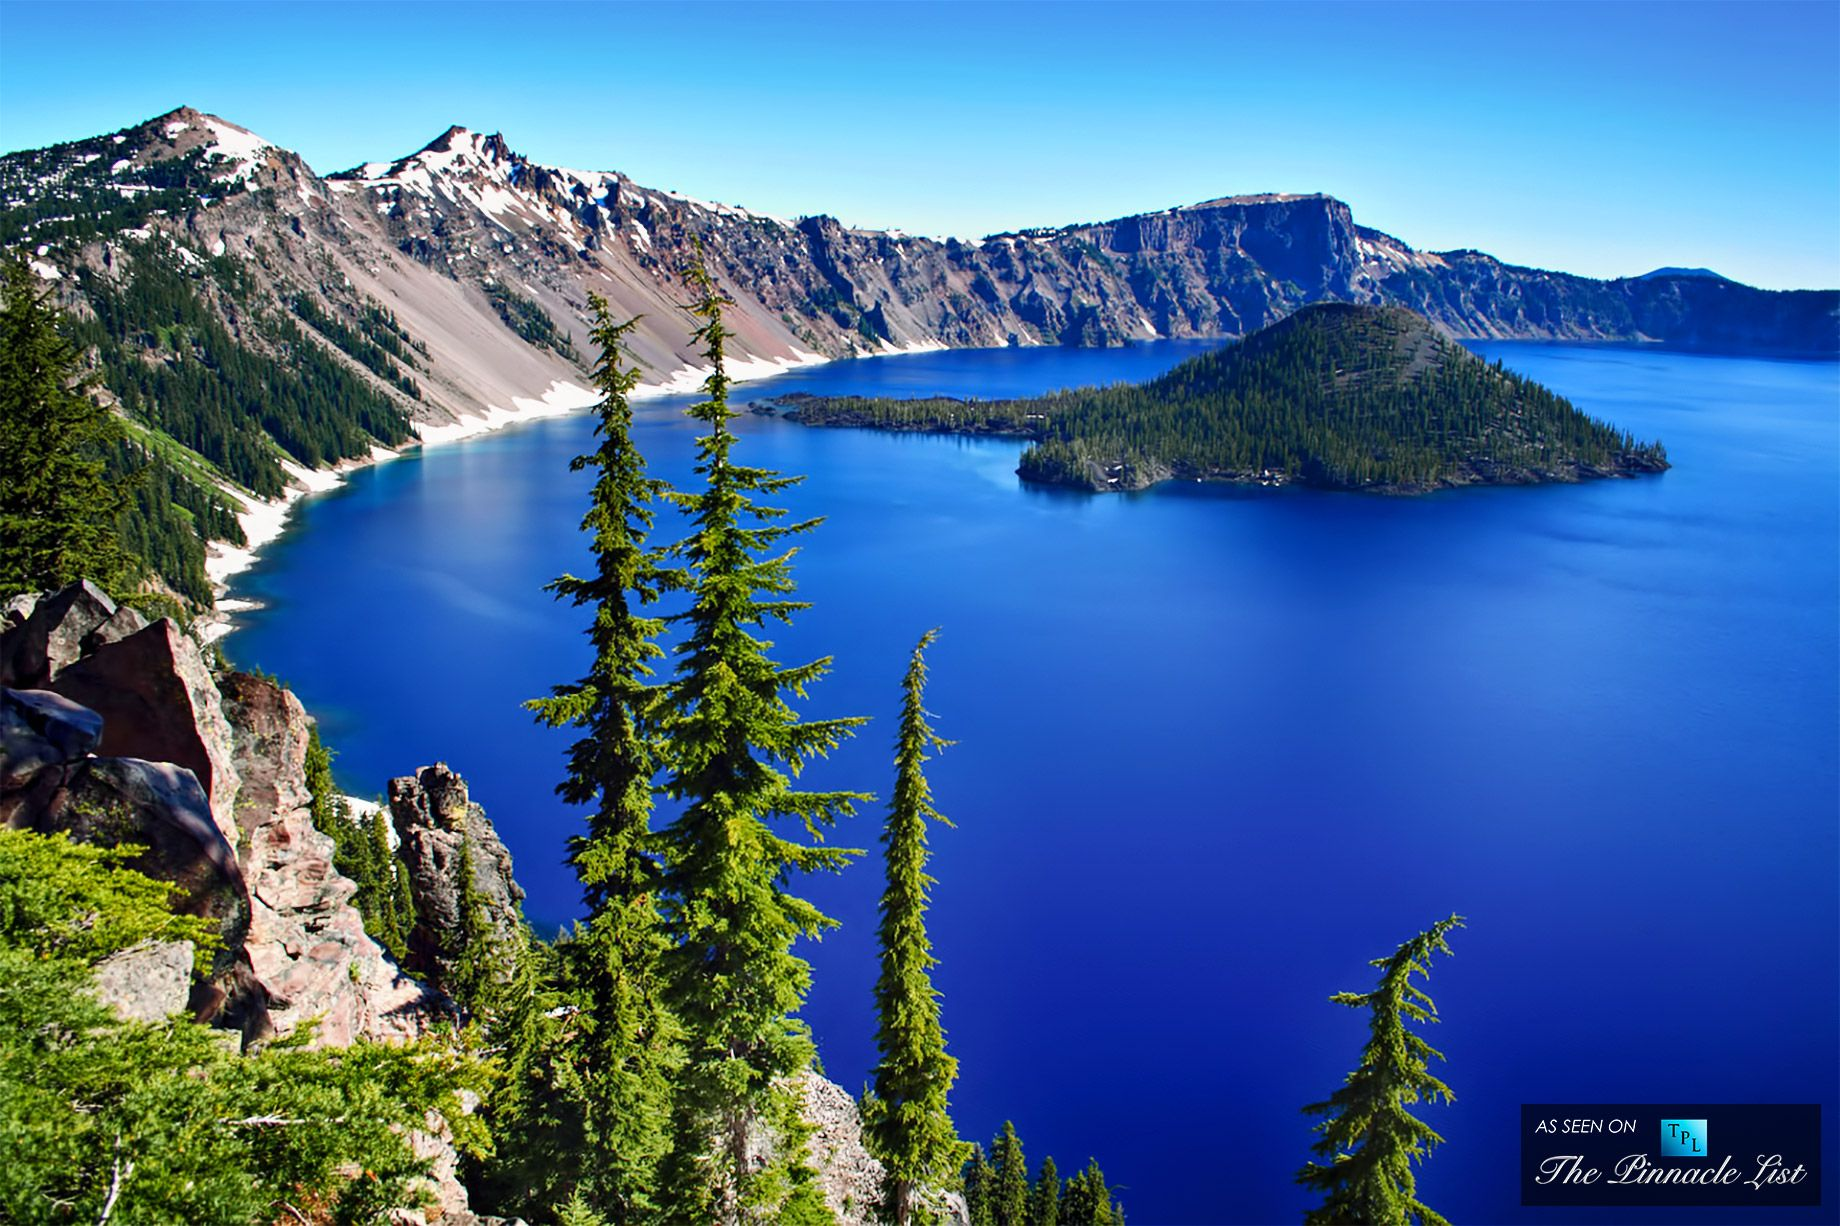 Crater Lake Americas Deepest Crystal Blue Water Lake In Oregon - 10 cool landmarks in crater lake national park